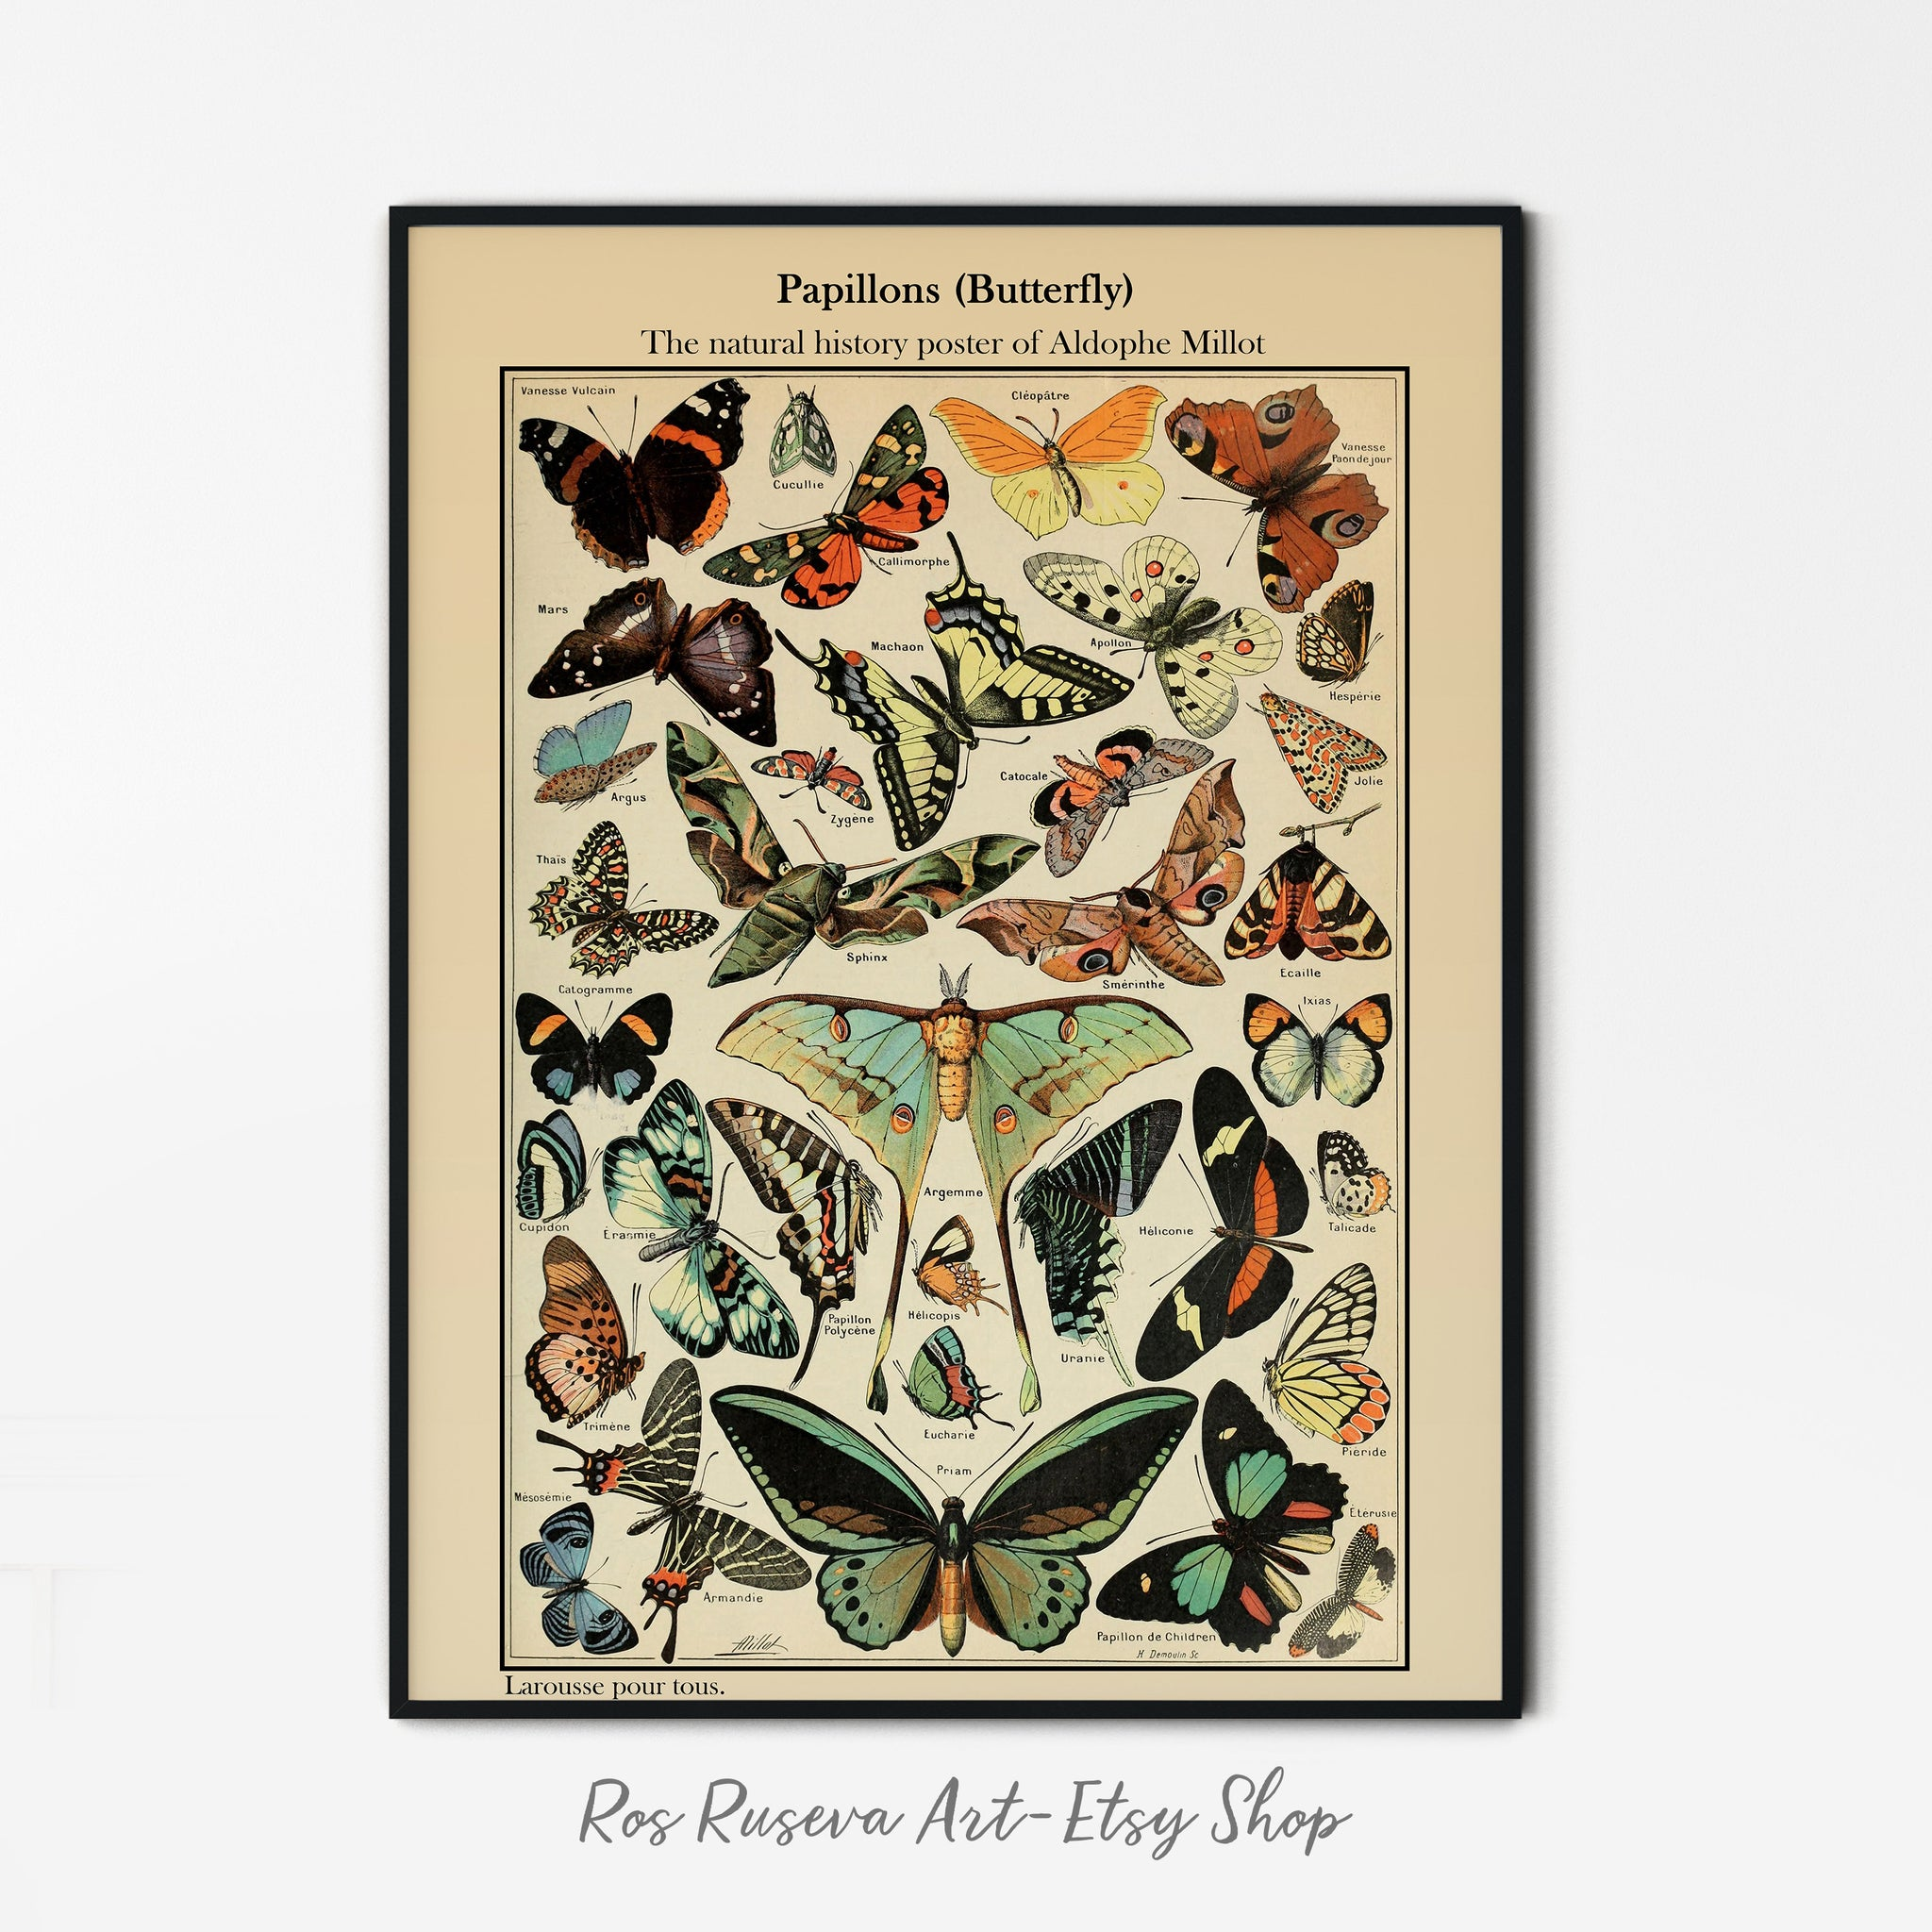 Natural History Poster Vintage Butterfly Print Adolphe Millot Poster Vintage Poster Butterfly Illustrations Butterfly Prints ButterflyPoster